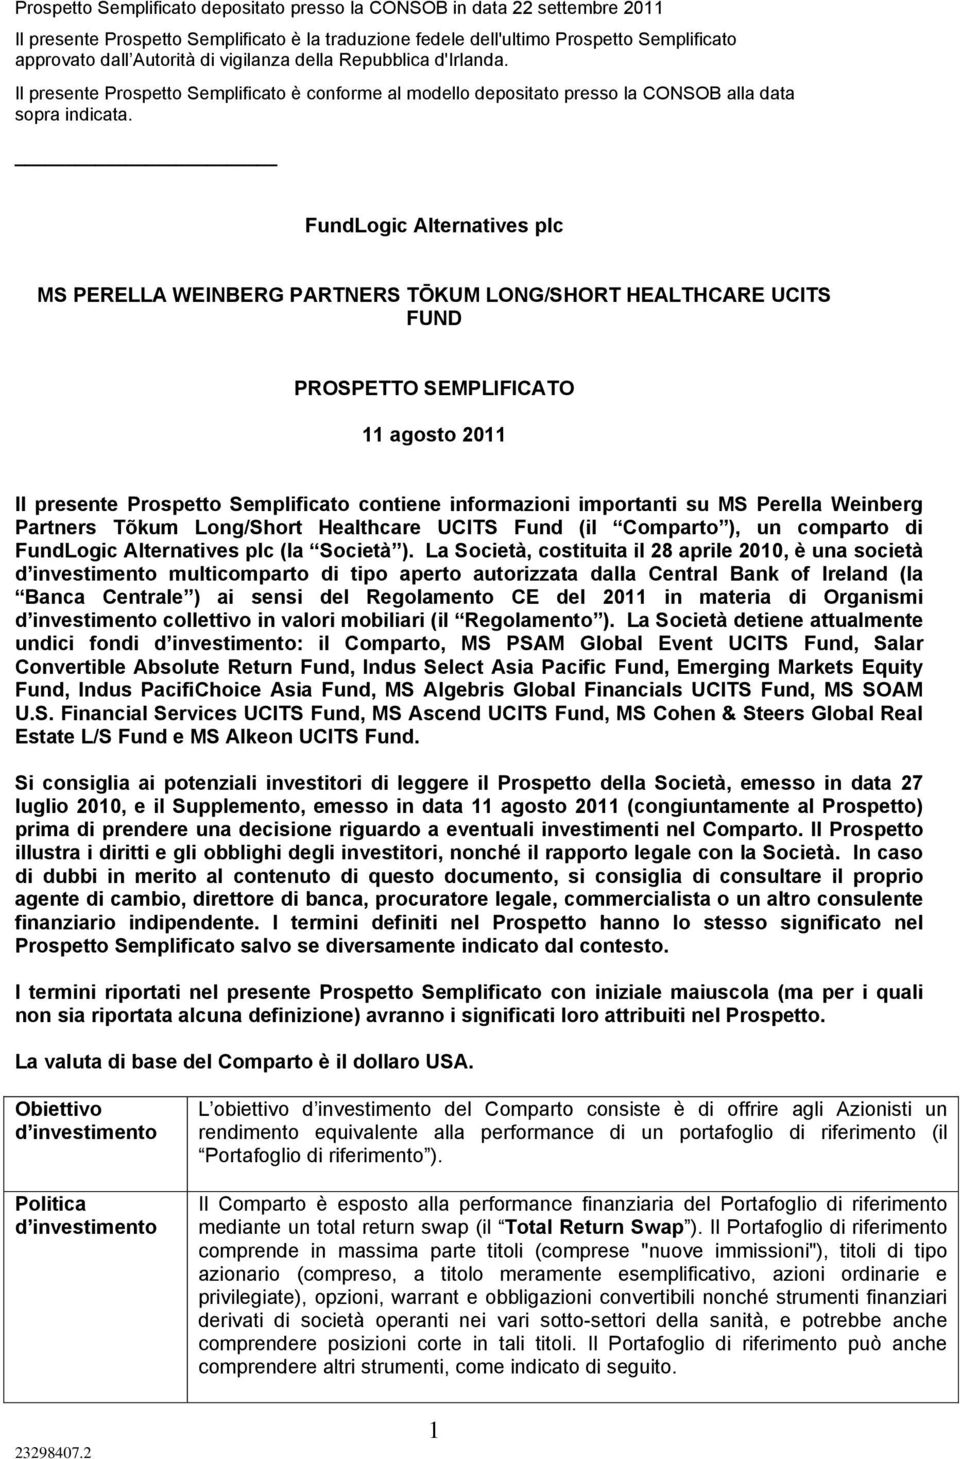 FundLogic Alternatives plc MS PERELLA WEINBERG PARTNERS TŌKUM LONG/SHORT HEALTHCARE UCITS FUND PROSPETTO SEMPLIFICATO 11 agosto 2011 Il presente Prospetto Semplificato contiene informazioni